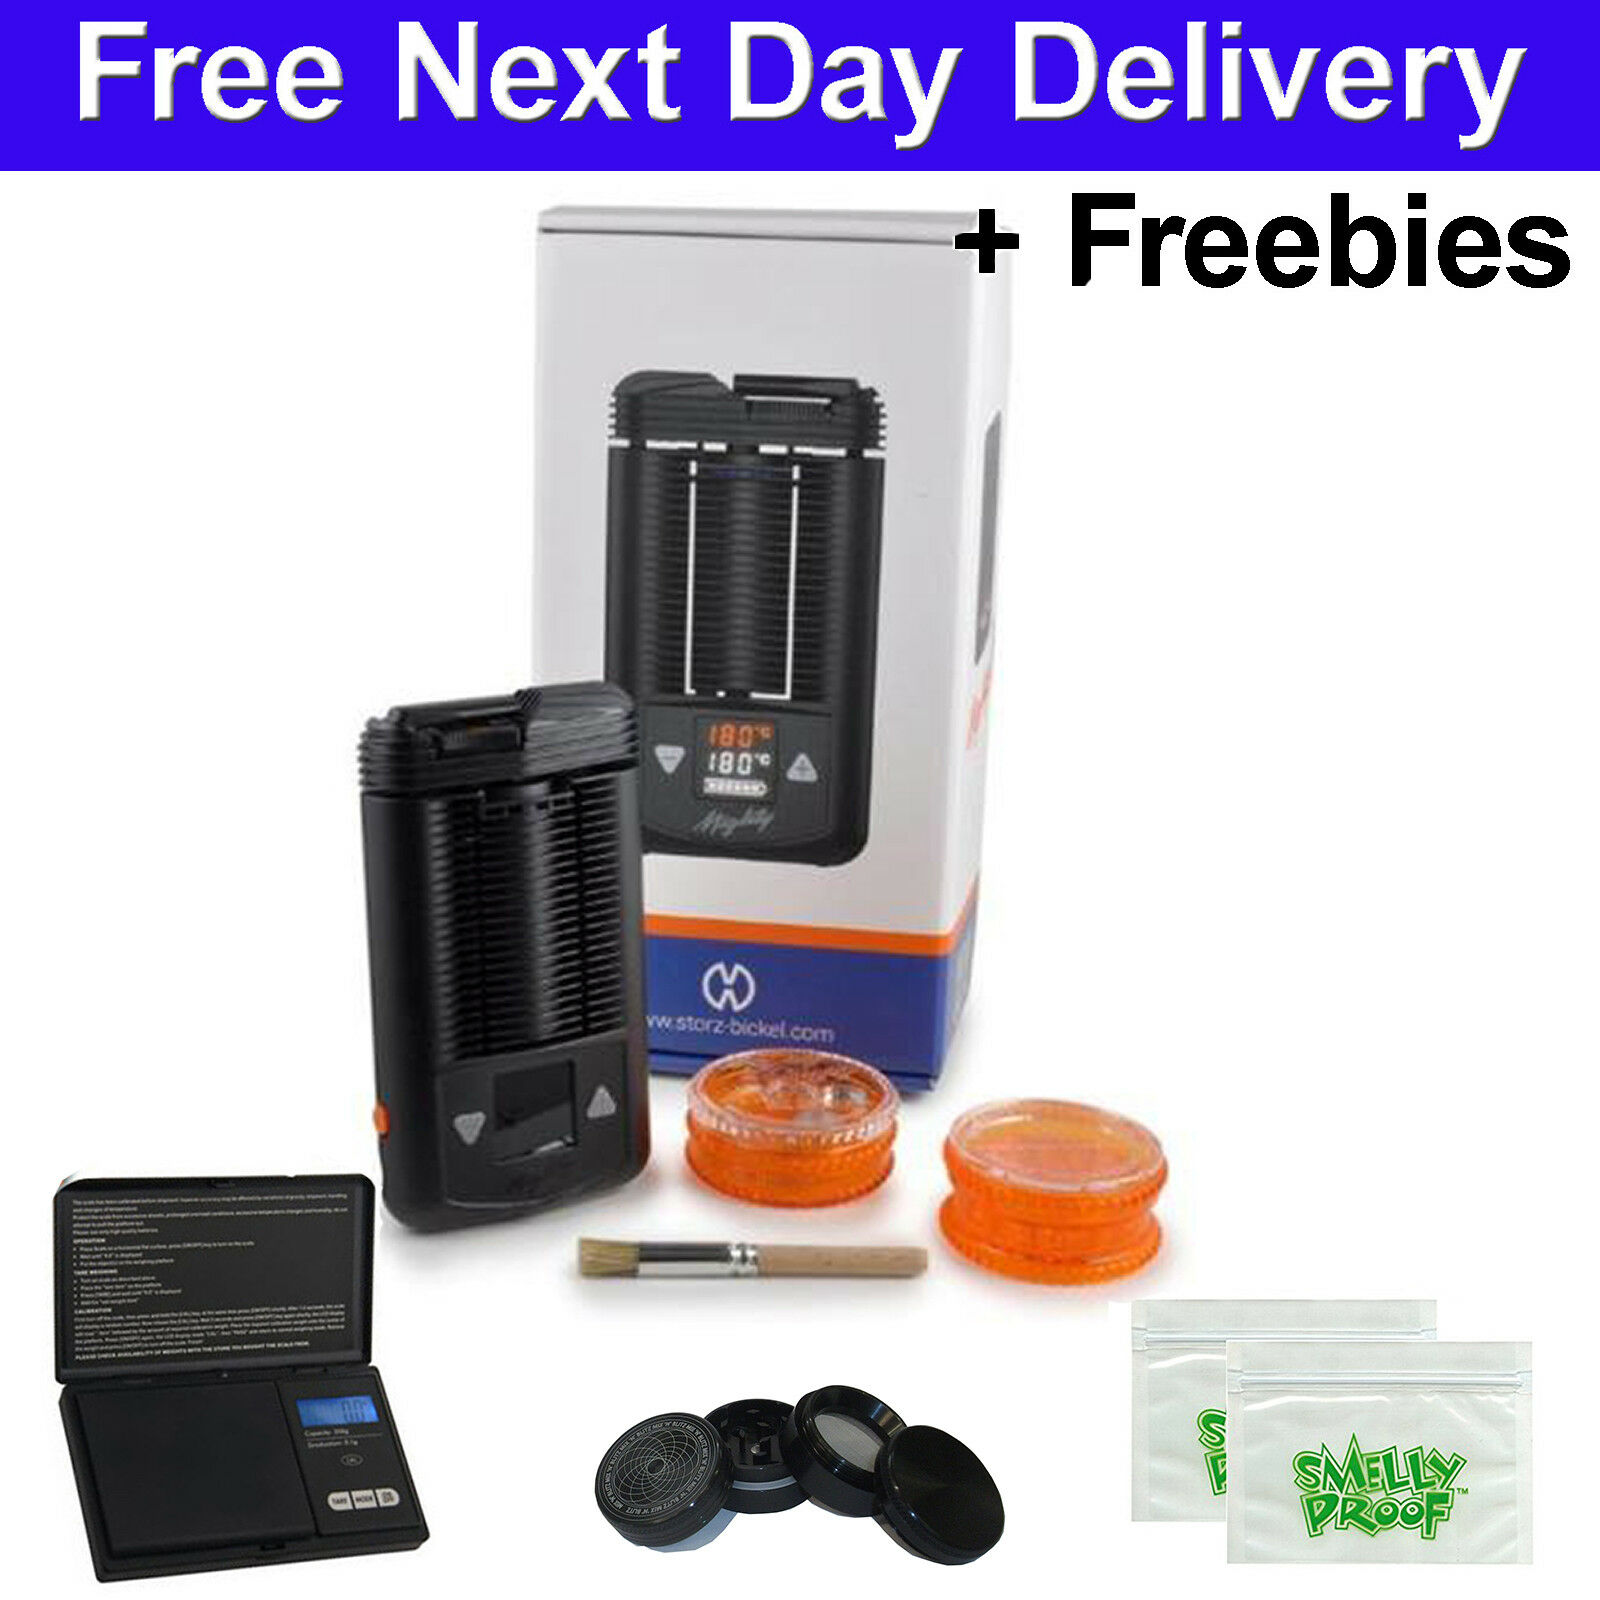 Details about Mighty Portable Vaporizer 2019 Volcano Storz Bickel & Genuine  Aromatherapy New